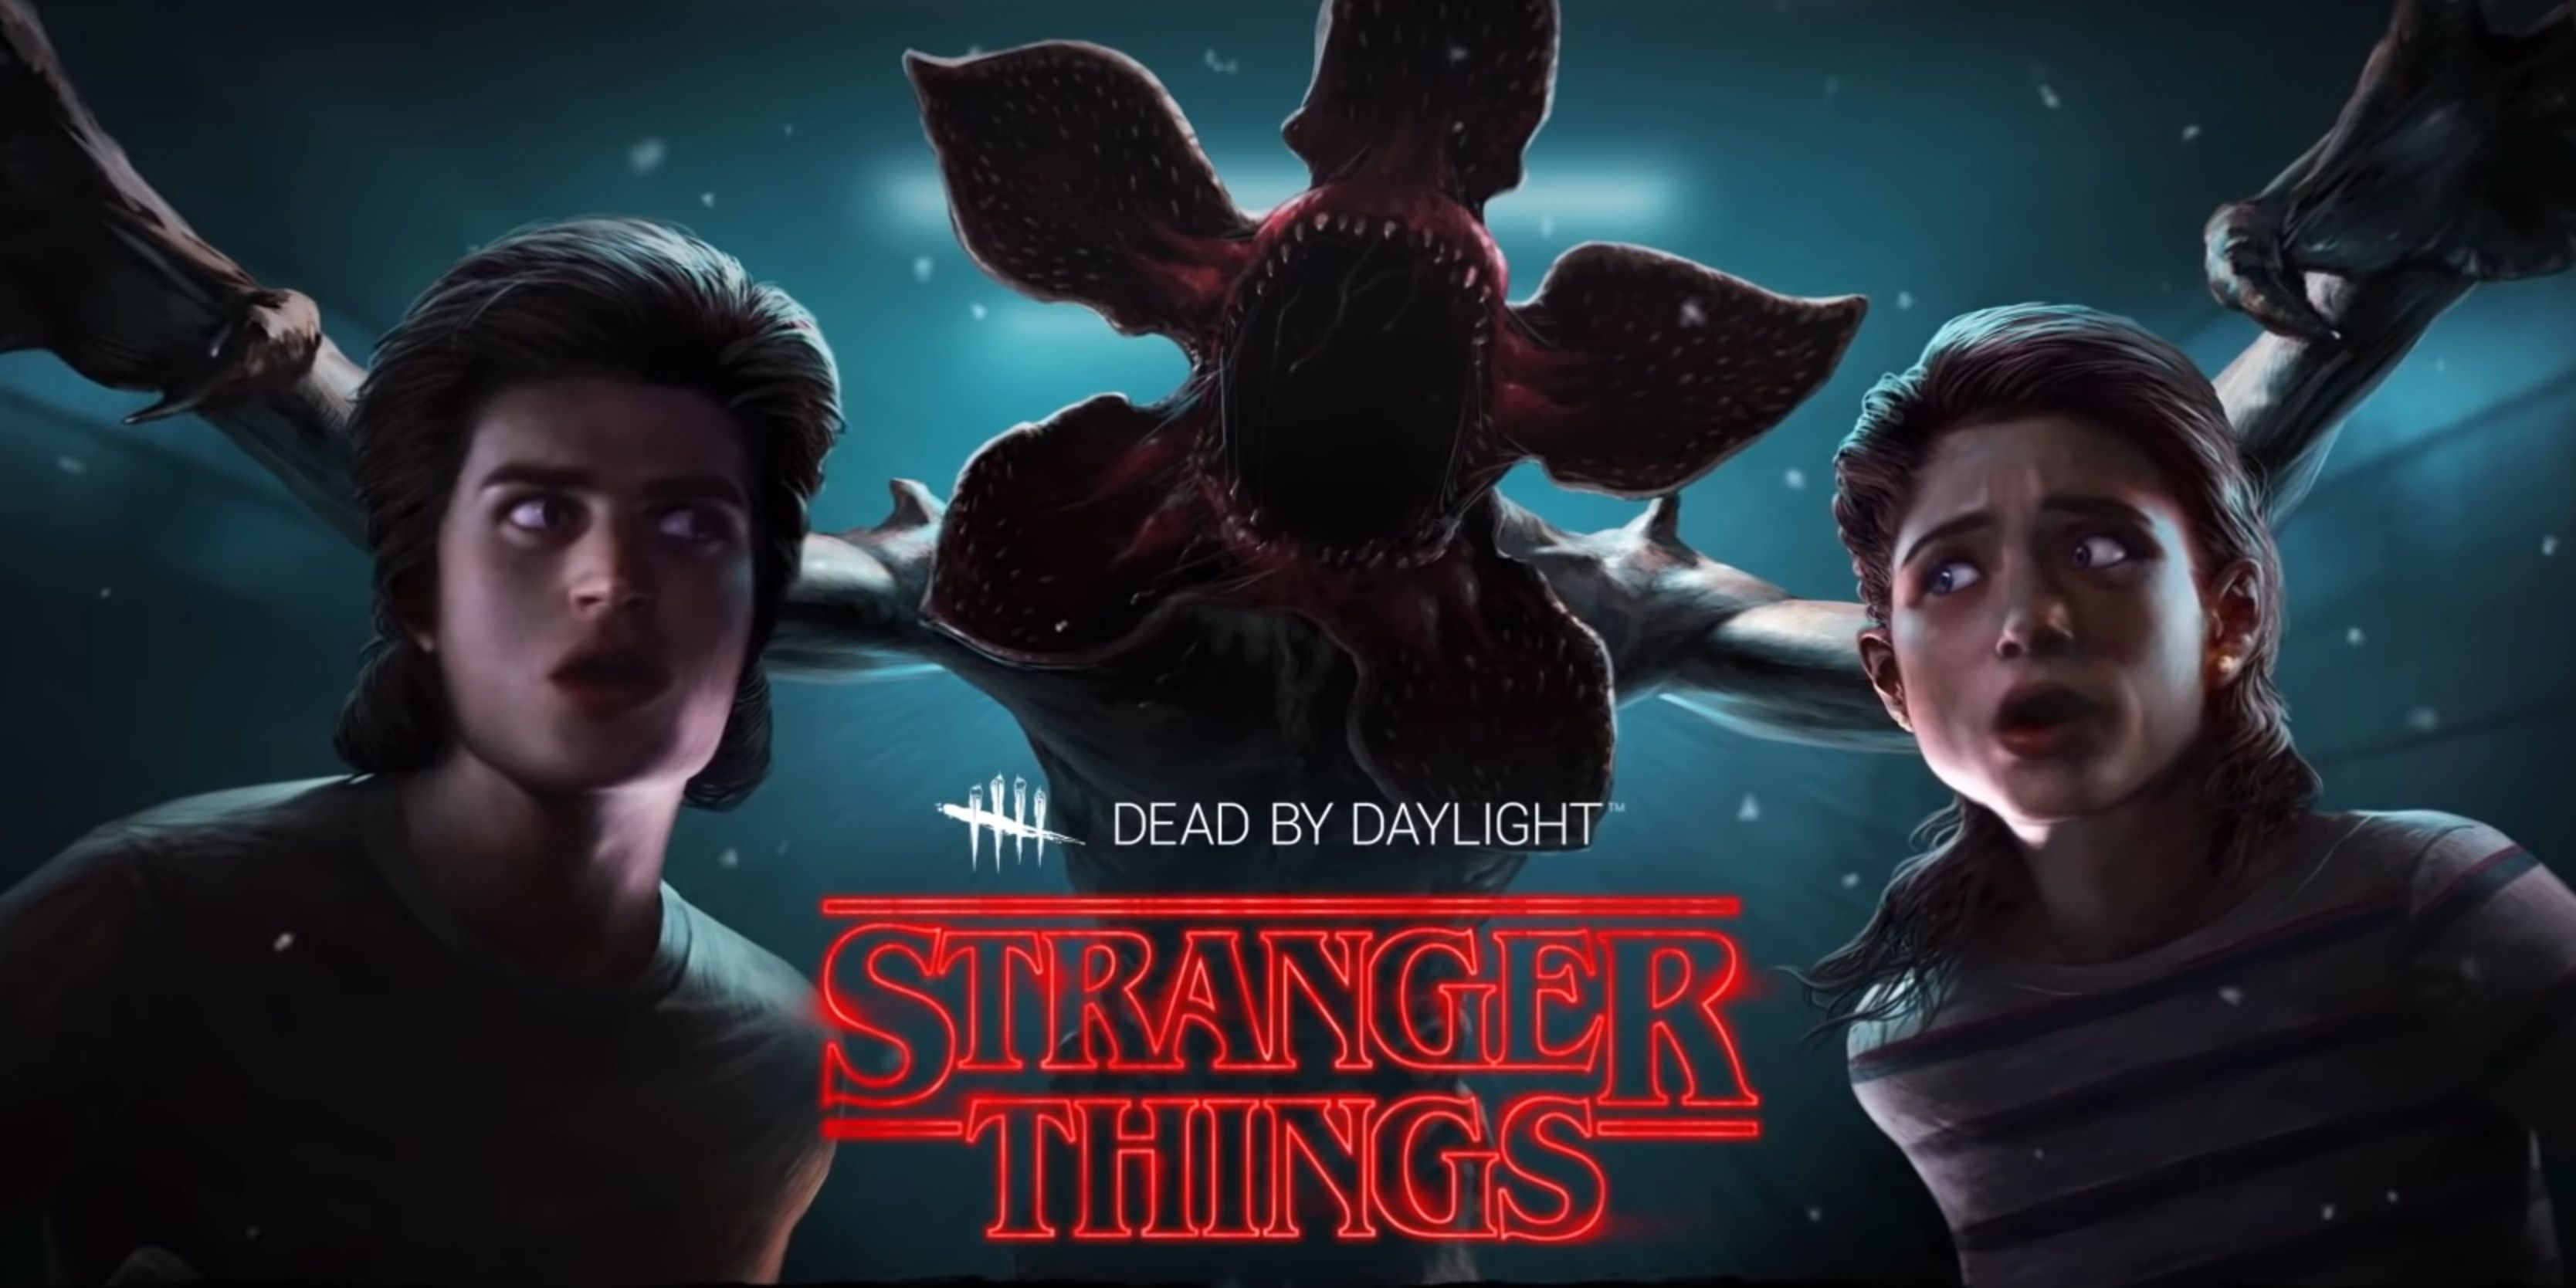 Dead by Daylight Game Adds Stranger Things Characters in New Update